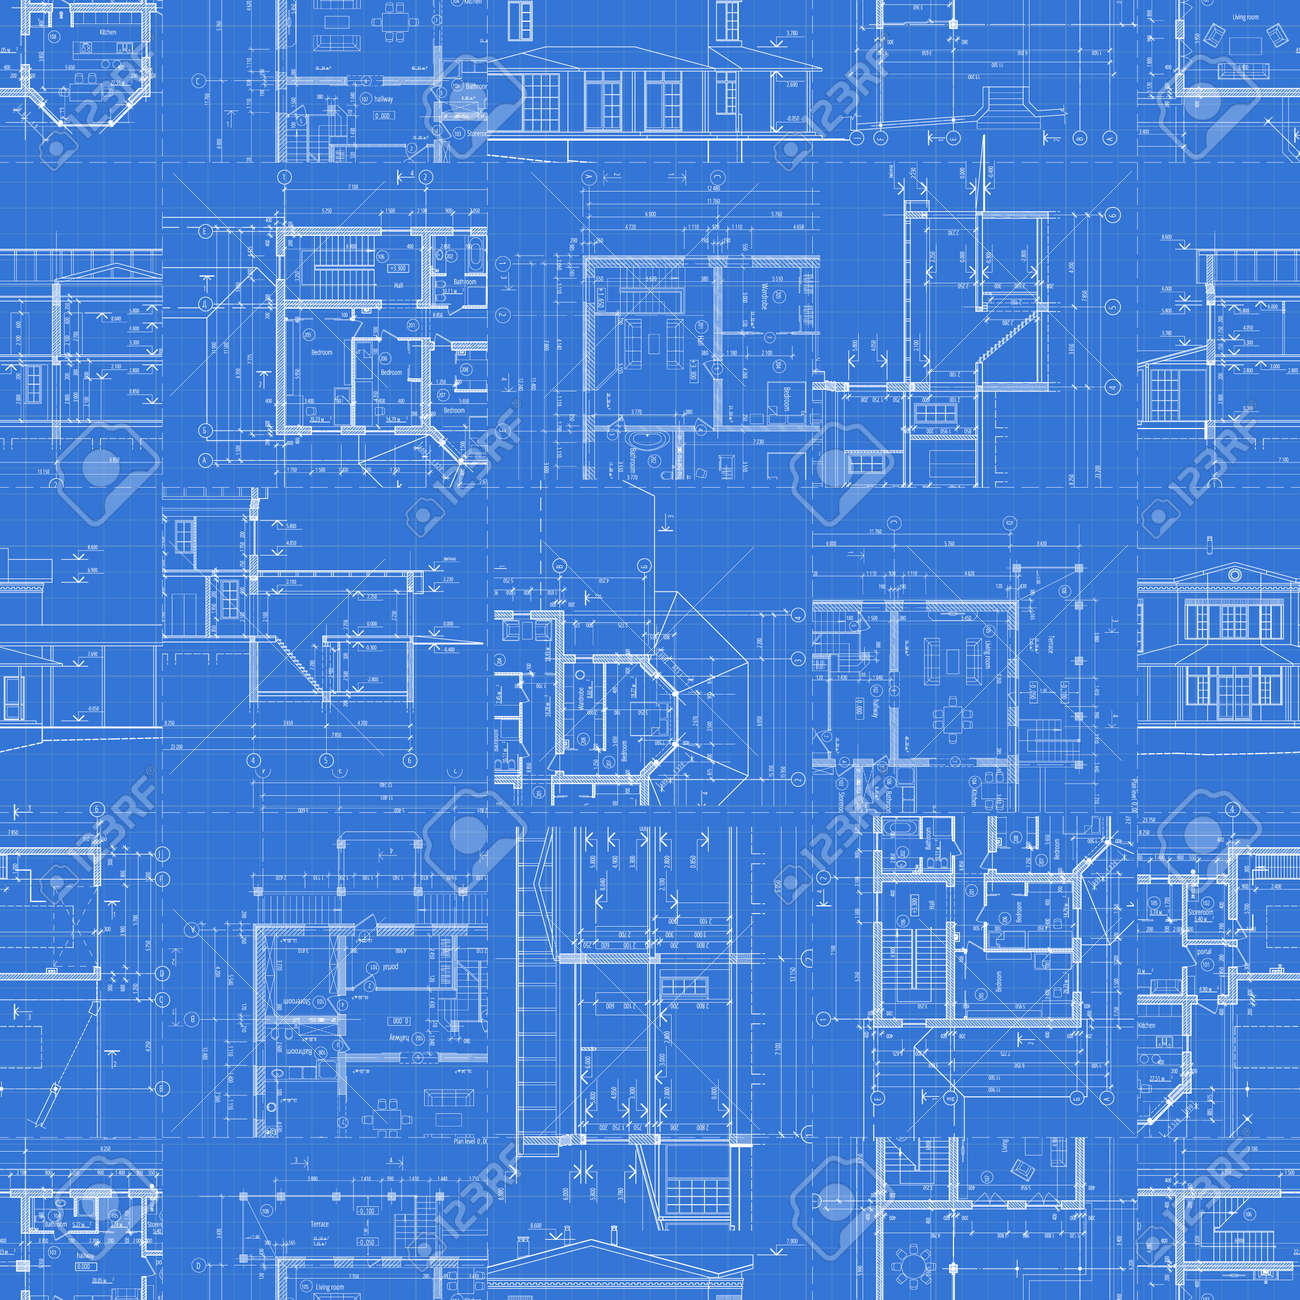 Architectural blueprints set of technical drawings on blue architectural blueprints set of technical drawings on blue background seamless pattern vector illustration malvernweather Gallery